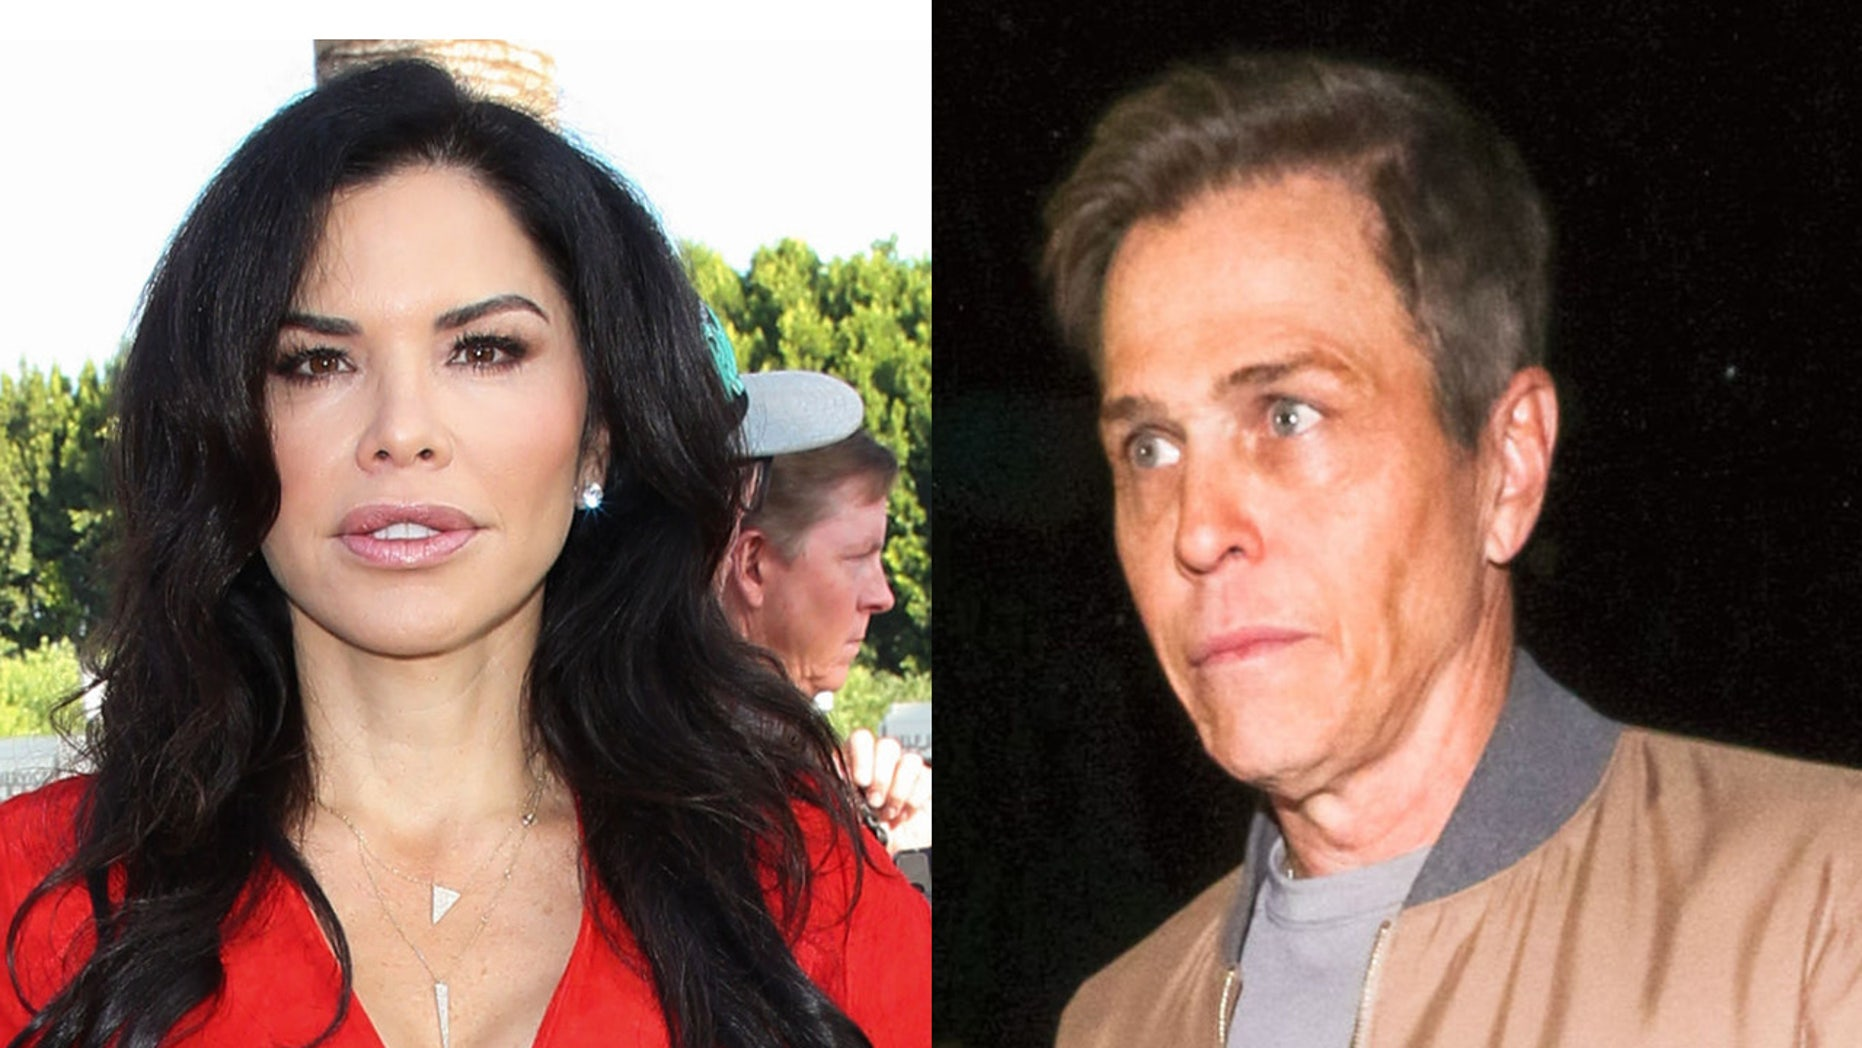 Lauren Sanchez and Patrick Whitesell filed for divorce on Friday, according to reports.